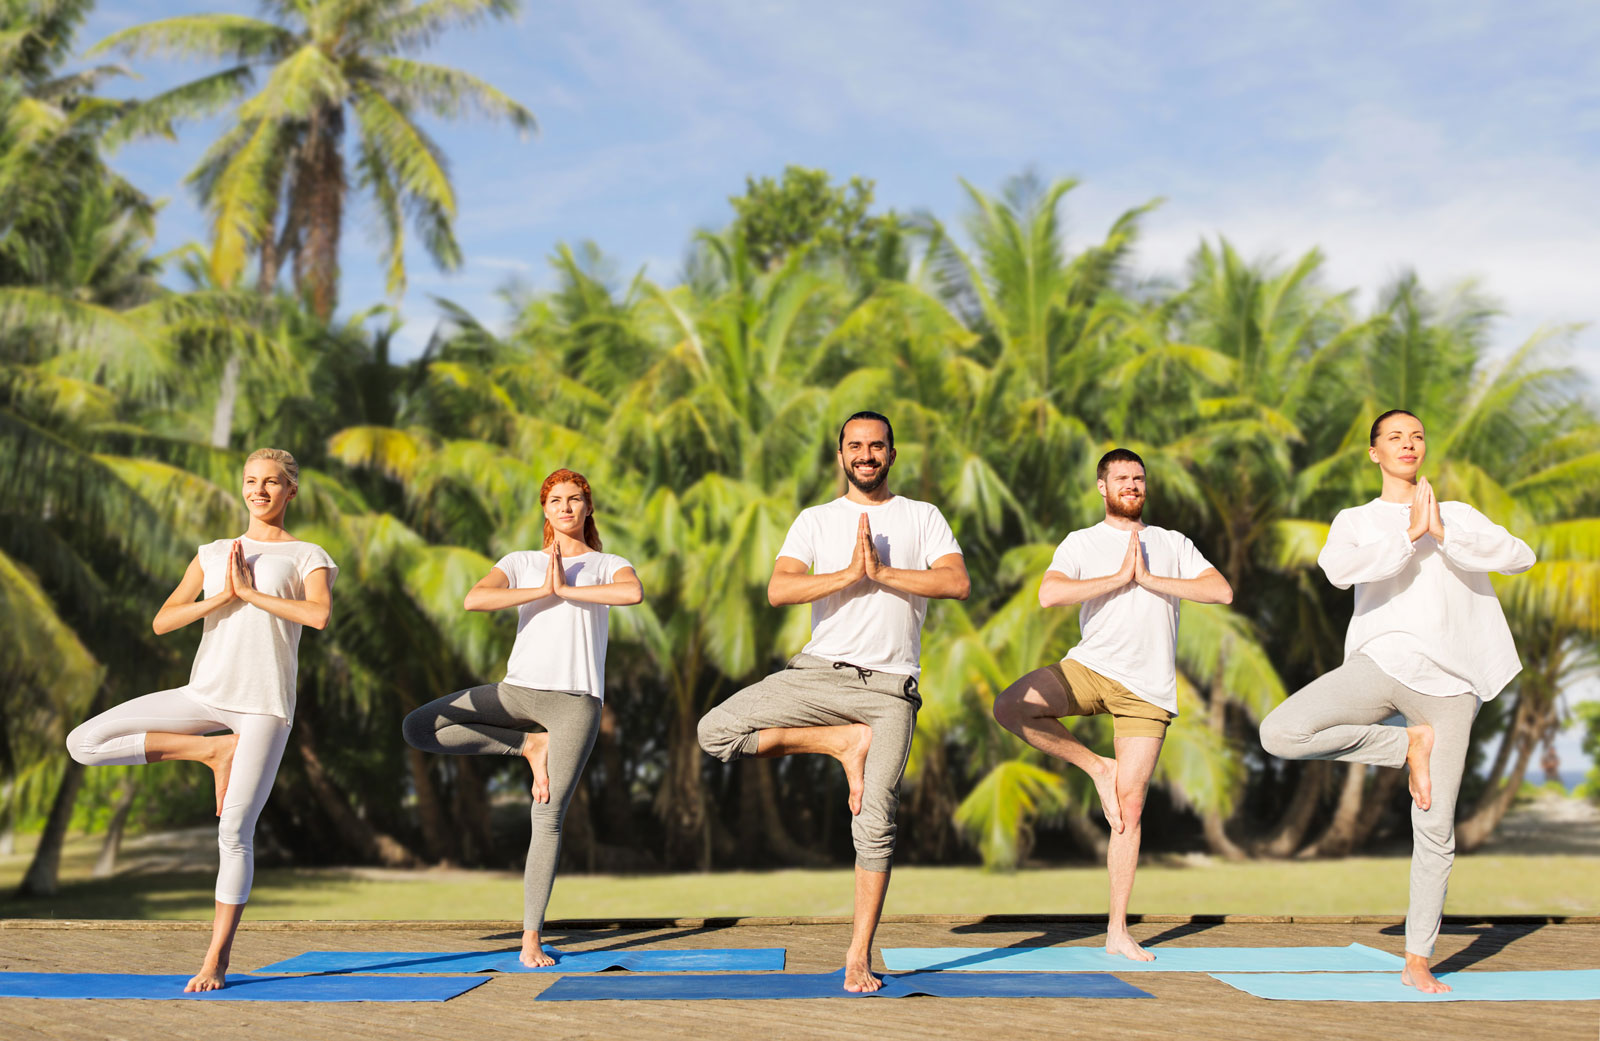 Group Doing Yoga Outdoor | 17 Most Popular Types Of Yoga: A Simple Breakdown